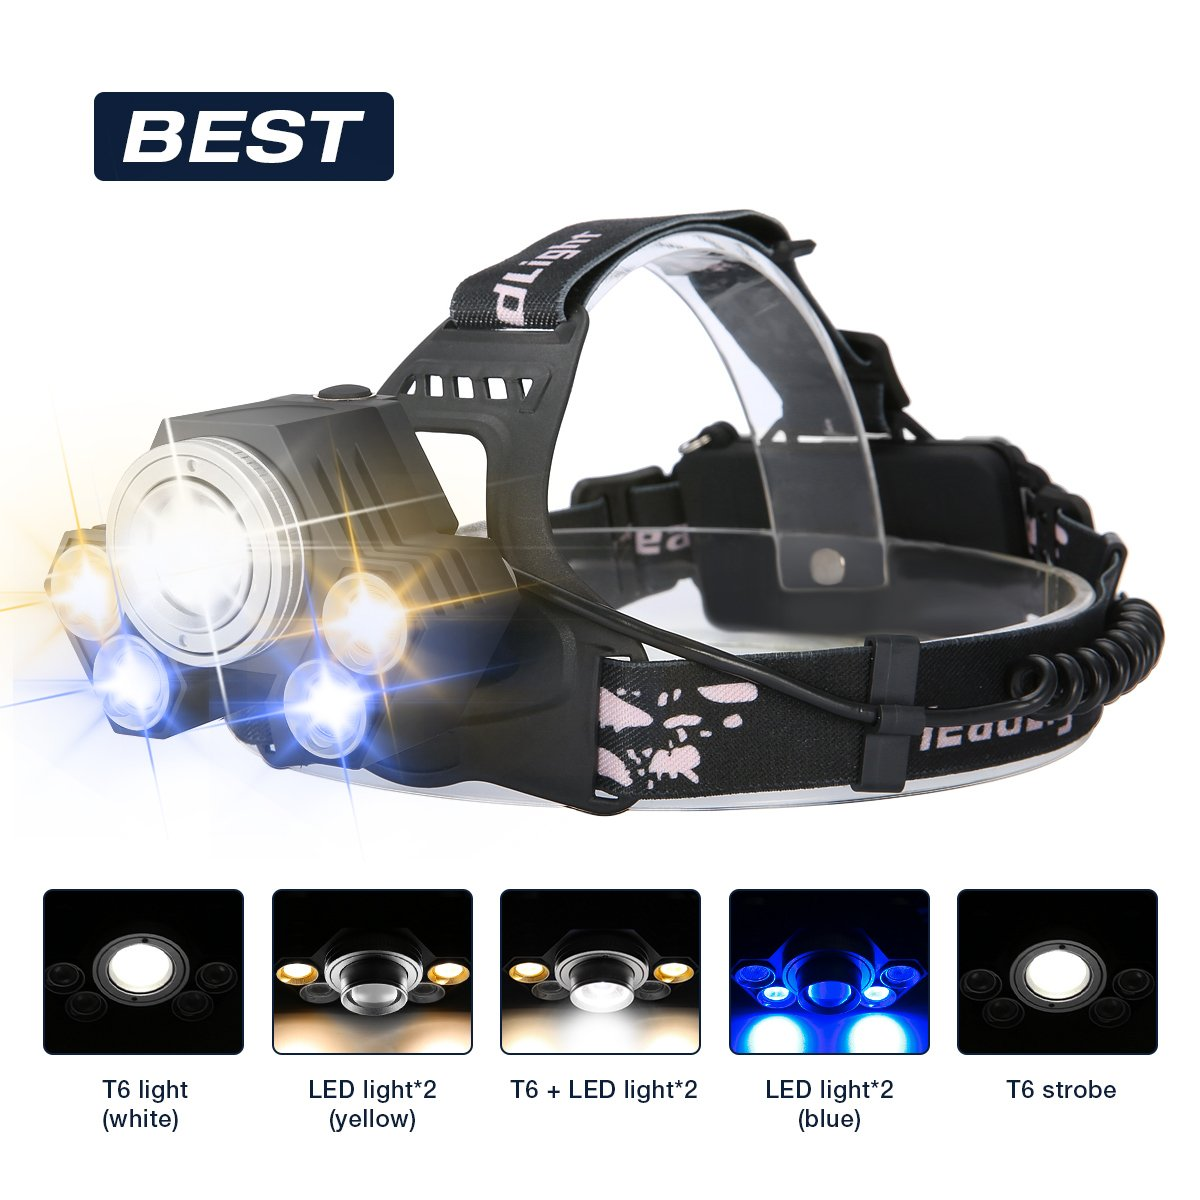 Symbol Of The Brand Bicycle Accessories Bike Flashlight Headband/helmet Strap Mount Head Strap For Led Headlamp/head Car Styling #30 Atv,rv,boat & Other Vehicle